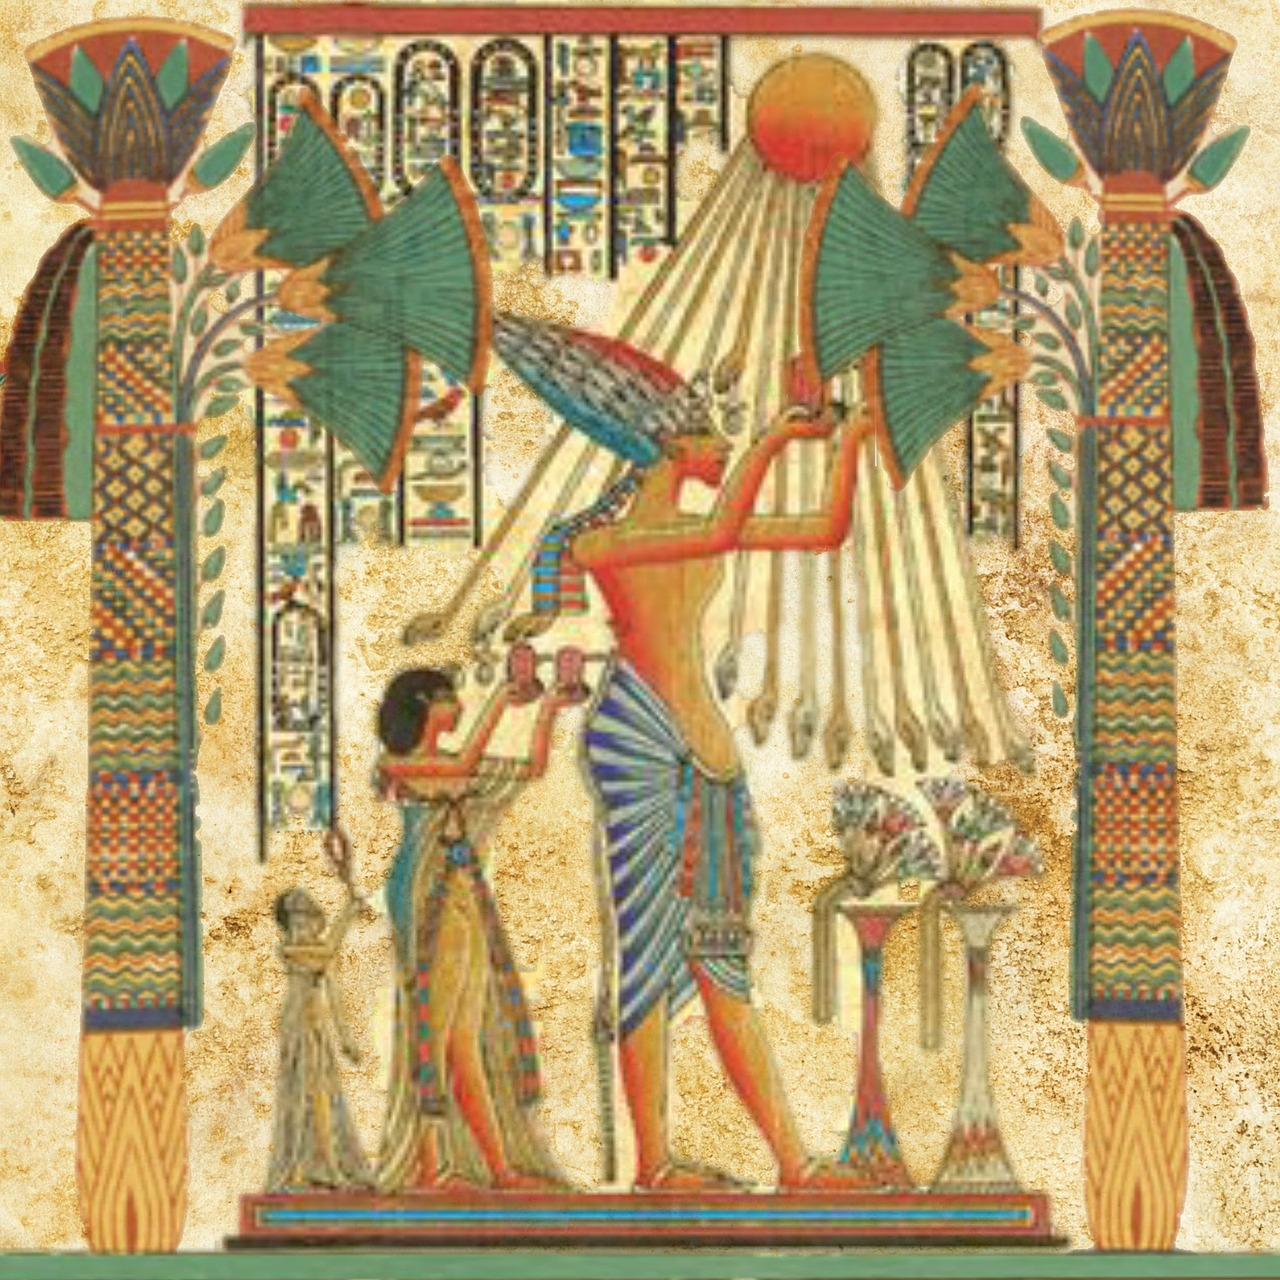 The Nephilim in Egypt? - www onfirecafe net